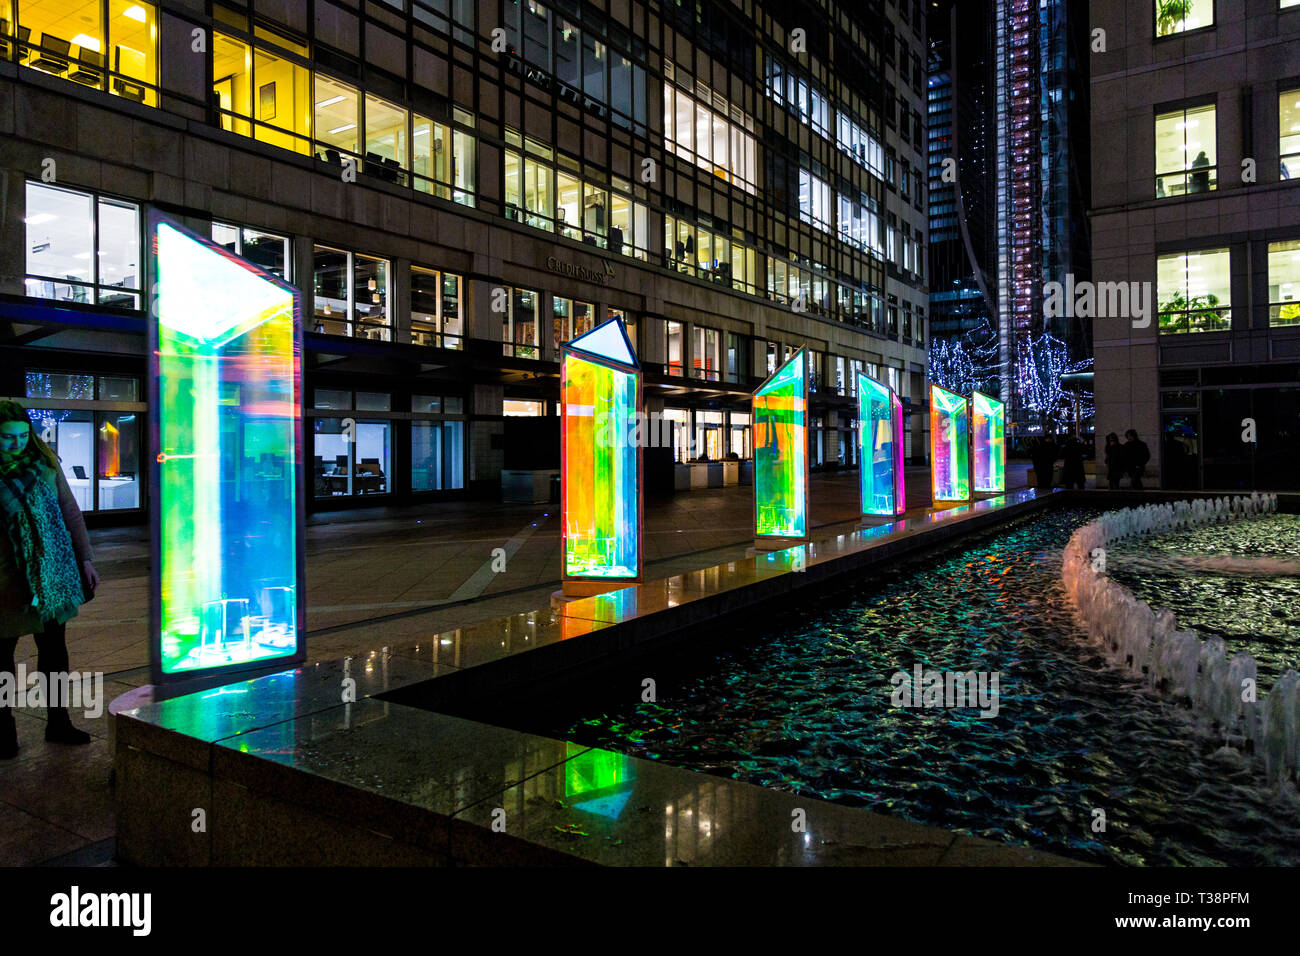 'Prismatica' by Raw Design at Canary Wharf Winter Lights Festival 2019, London, UK - Stock Image